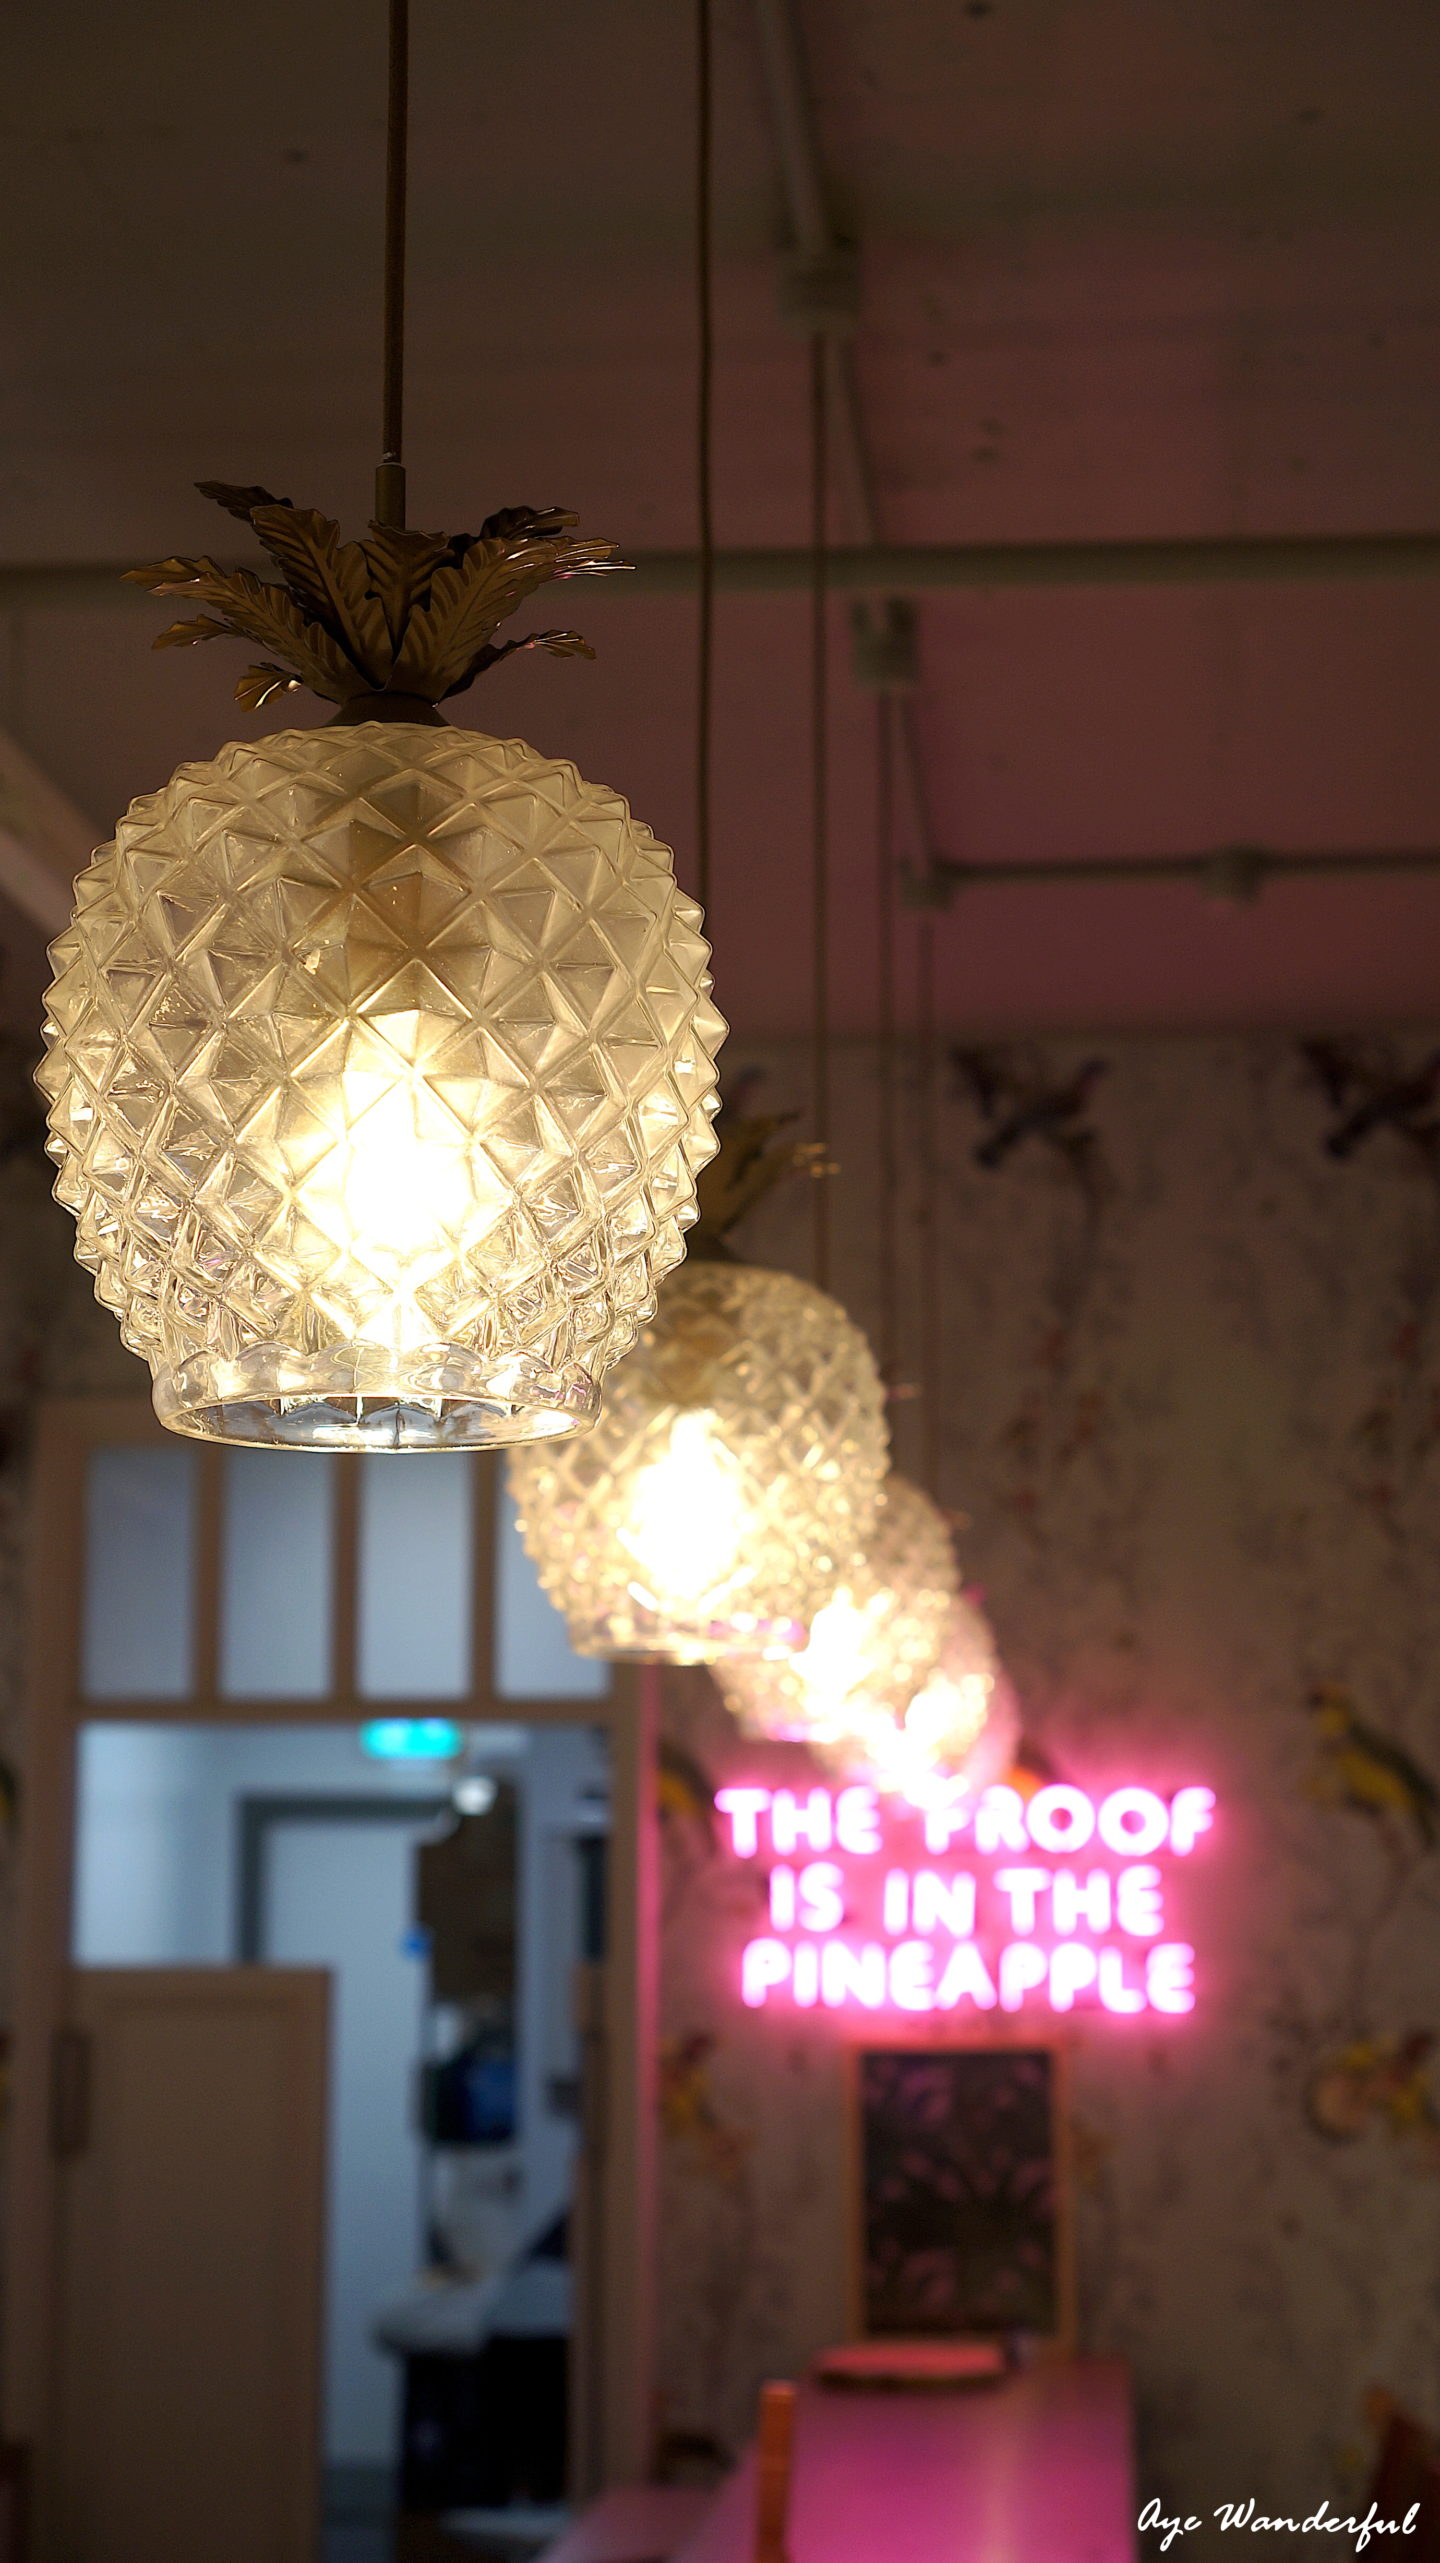 Pineapple Pendant lamp | Saucer & Spritz cafe | Oasis Tottenham Court Road London | Looks and Locations | Read more on www.ayewanderful.com